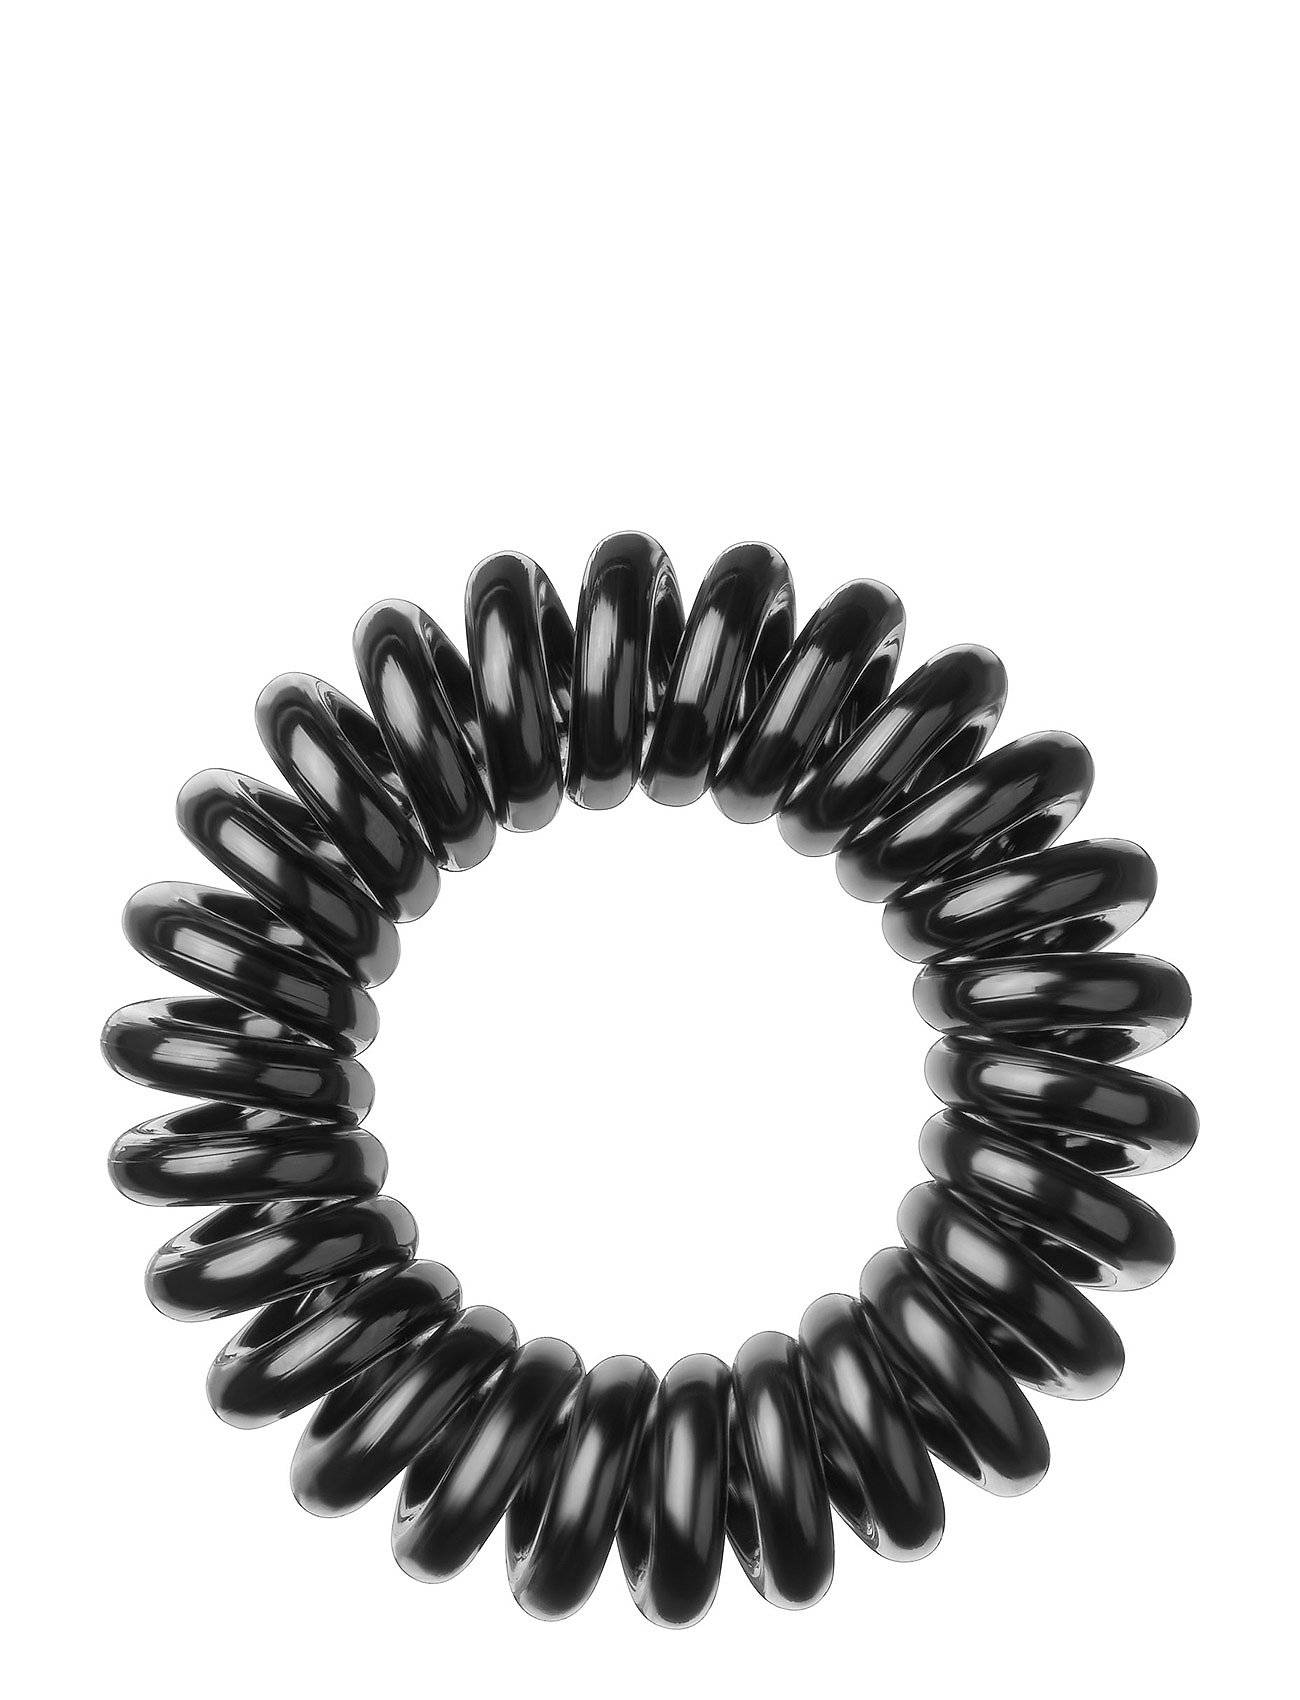 Image of Invisibobble Power True Black Beauty WOMEN Hair Accessories Hair Accessories Musta Invisibobble